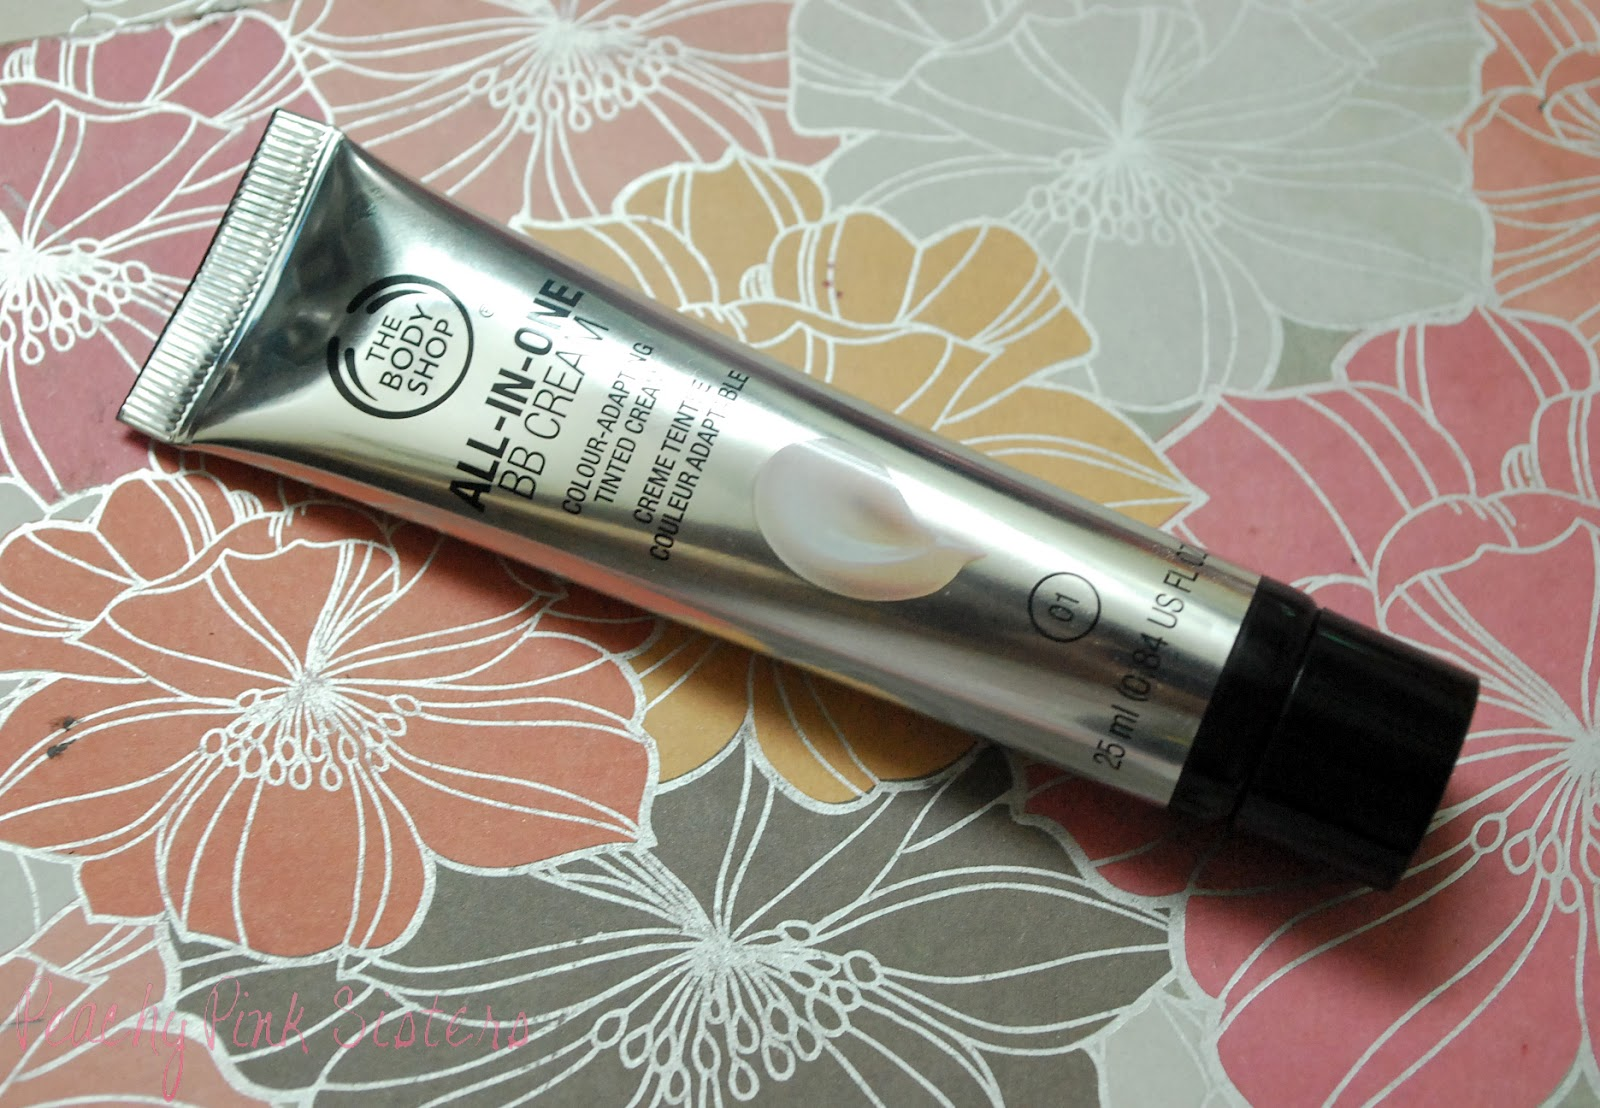 Peachy Pink Sisters Review The Body Shop All In One Bb Cream Laneige Lip Eye Make Up Remover Waterproof Ex 25ml There They Also Introduced Us To Their New Line And Were So Kind Give Samples That Our Shade